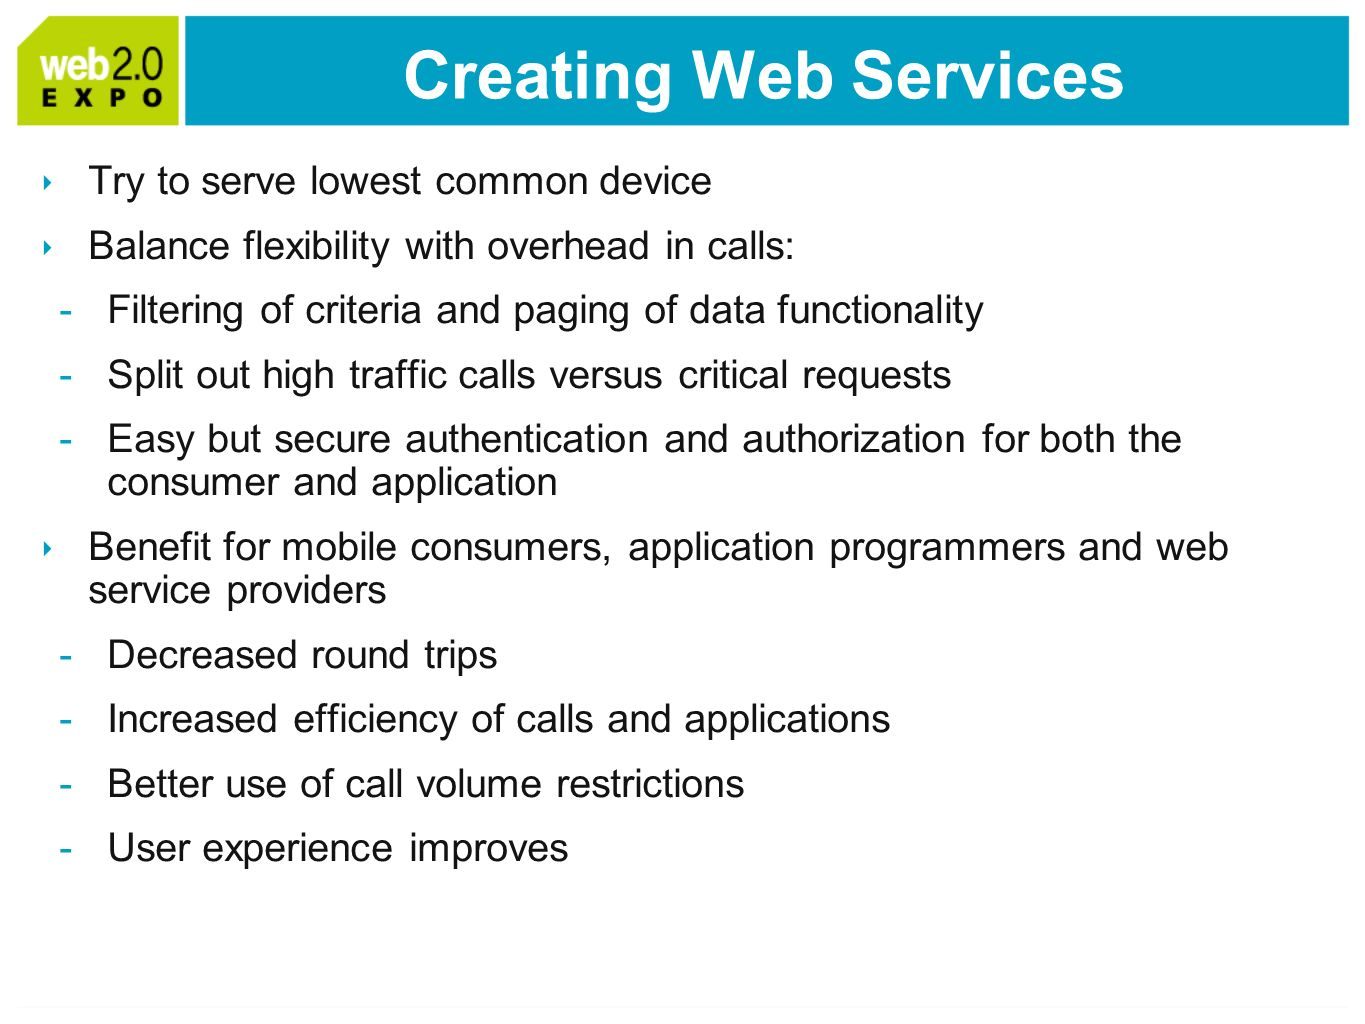 Creating Web Services Try to serve lowest common device Balance flexibility with overhead in calls: -Filtering of criteria and paging of data functionality -Split out high traffic calls versus critical requests -Easy but secure authentication and authorization for both the consumer and application Benefit for mobile consumers, application programmers and web service providers -Decreased round trips -Increased efficiency of calls and applications -Better use of call volume restrictions -User experience improves